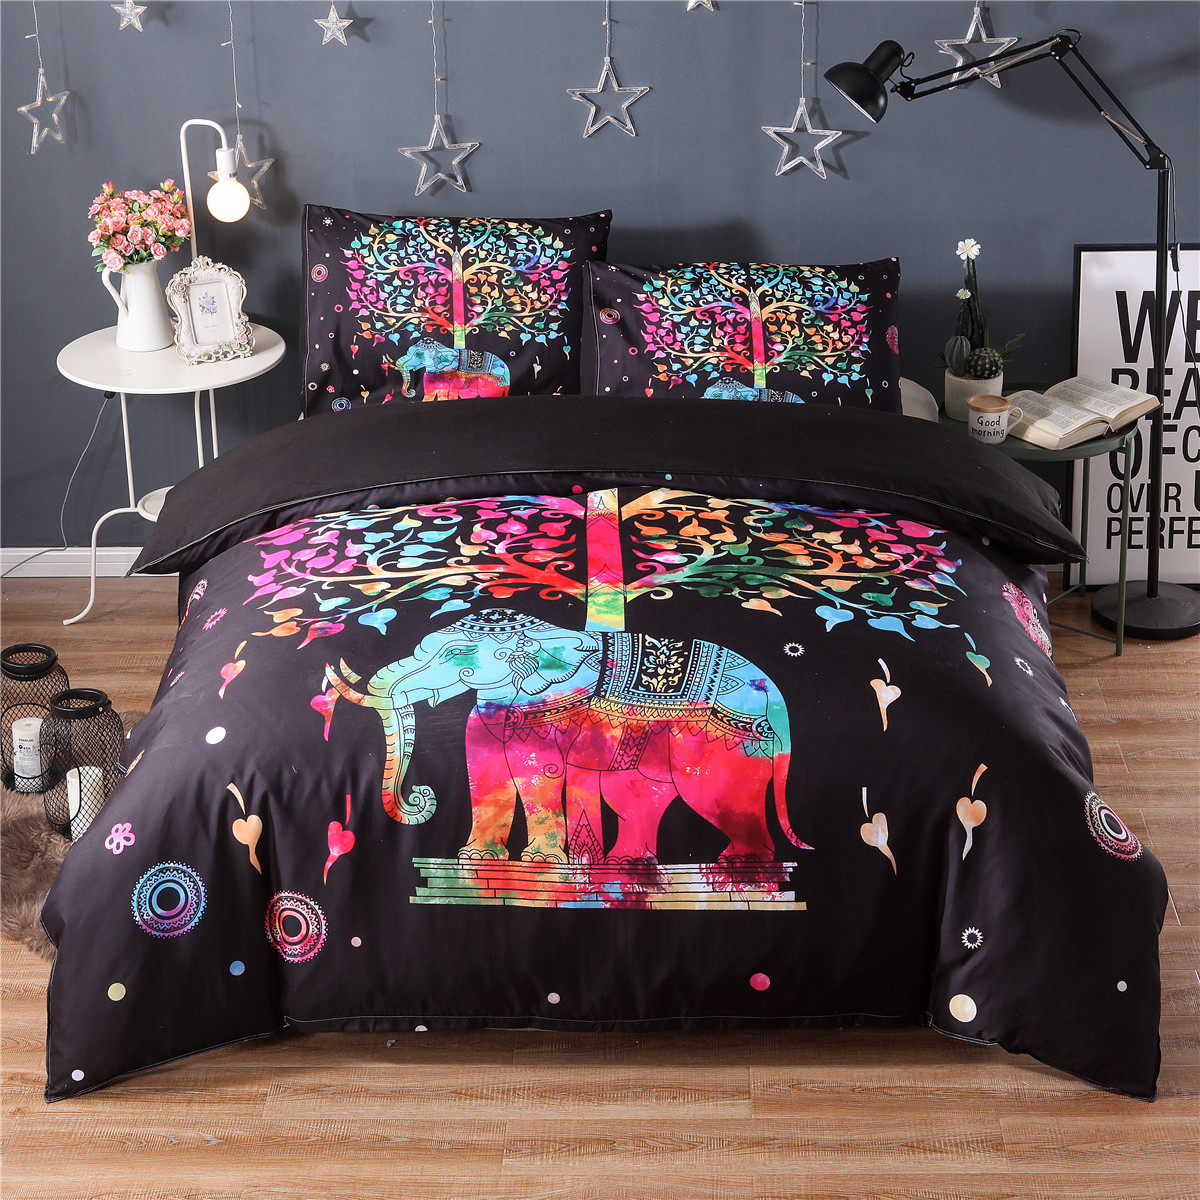 Multi Color Mandala Elephant Duvet Cover Set Bohemian Indian Pastel Floral Bedding Set Hippie Gypsy Bedding Twin Queen King Size